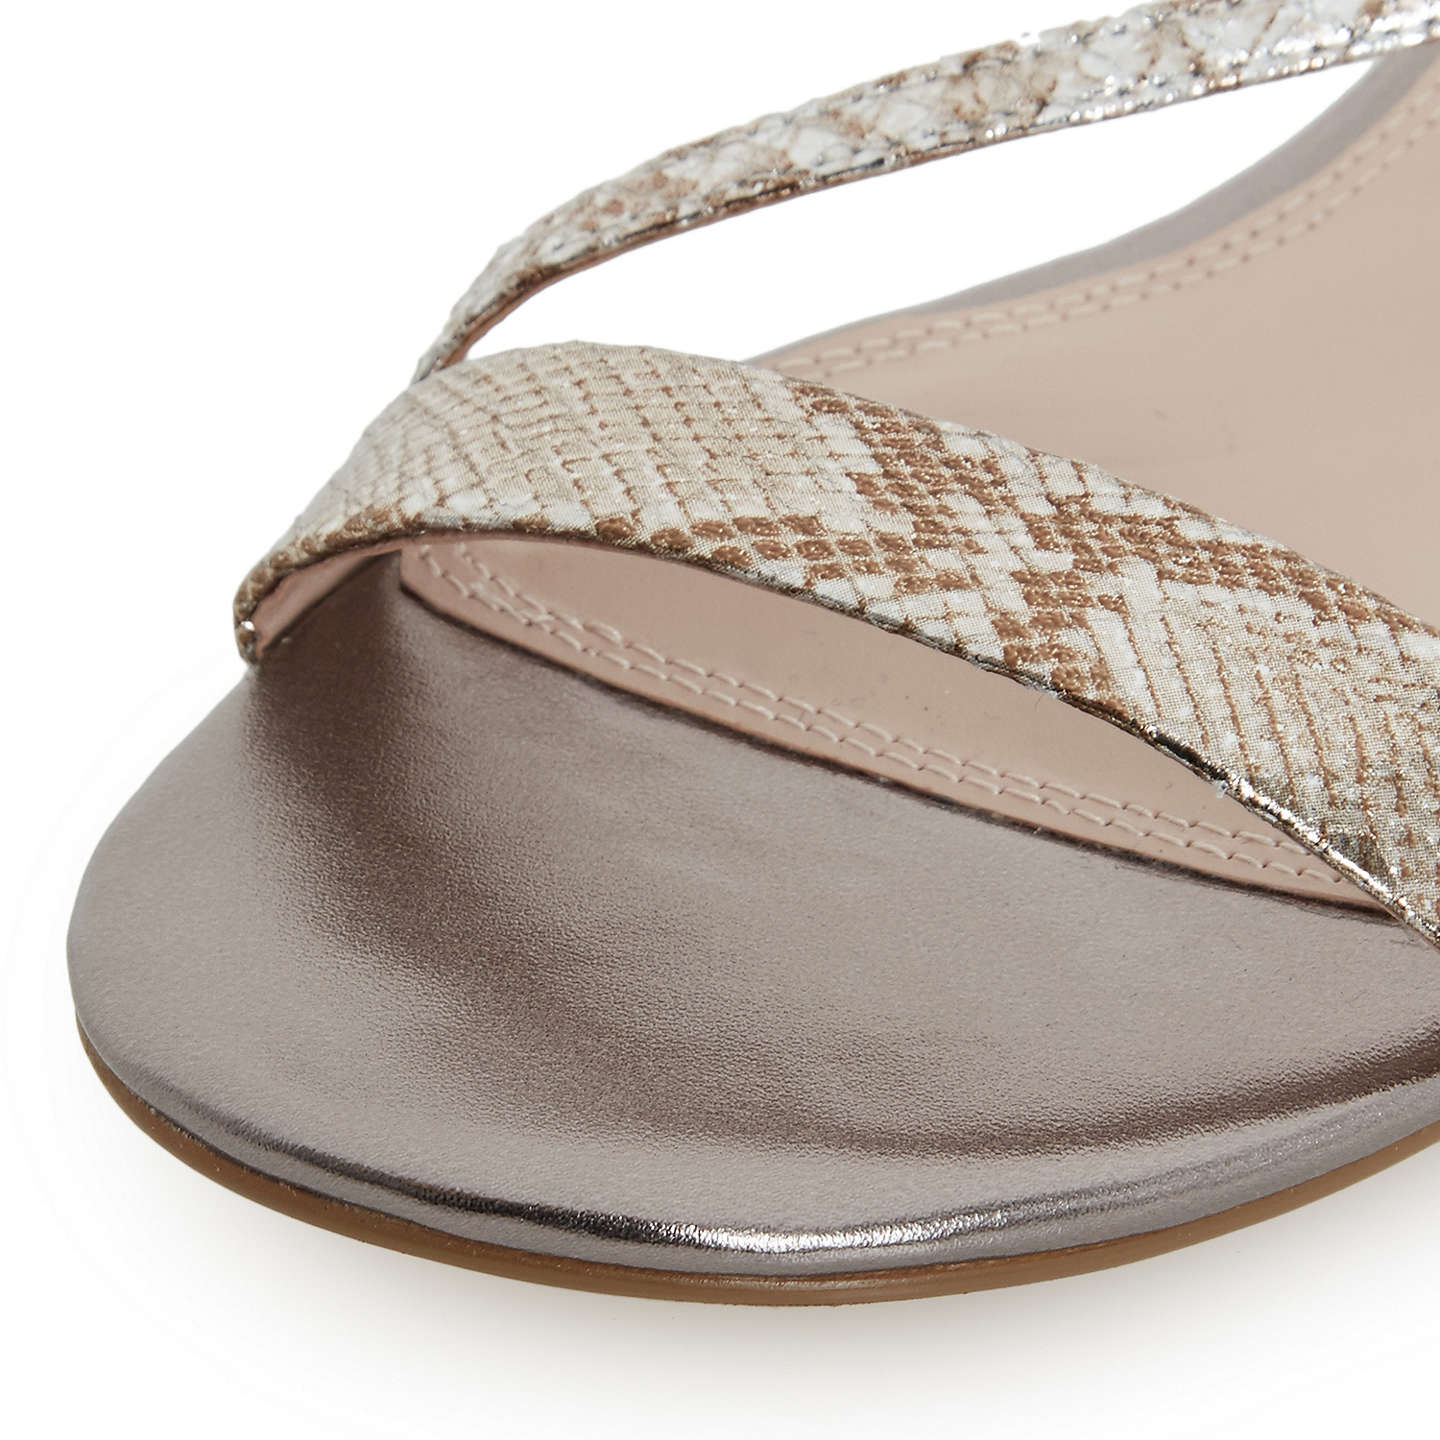 BuyDune Miss Asymmetric Flat Sandals, Pewter Metallic, 3 Online at johnlewis.com